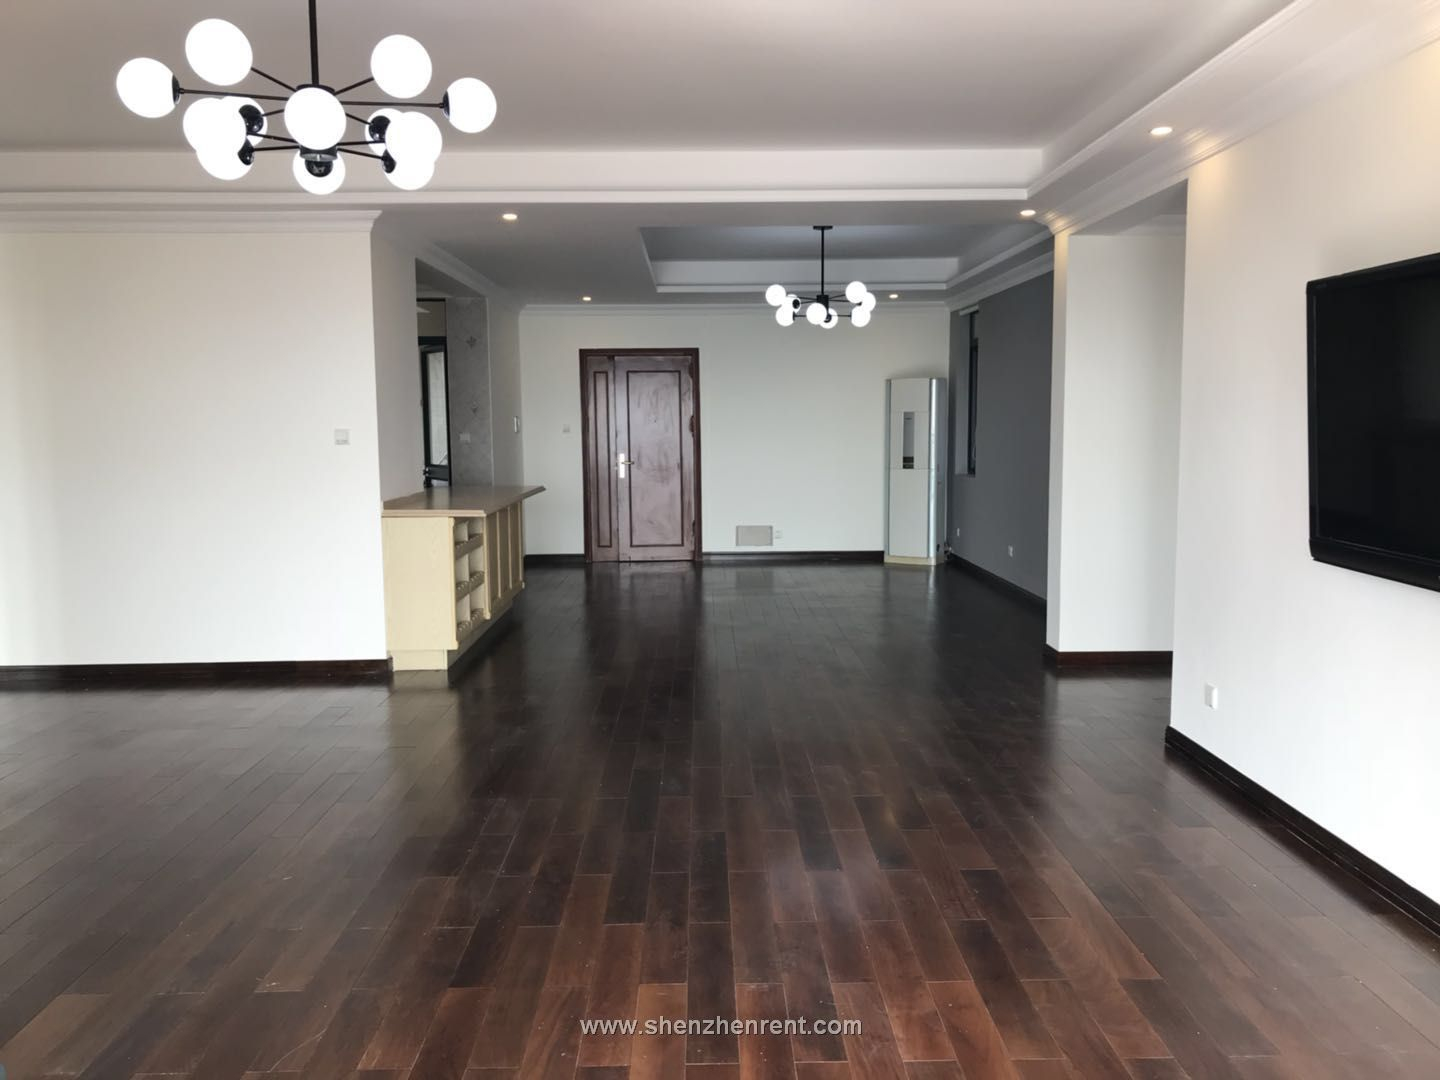 New decoration 4 bedrooms apartment in shekou rose garden for rent